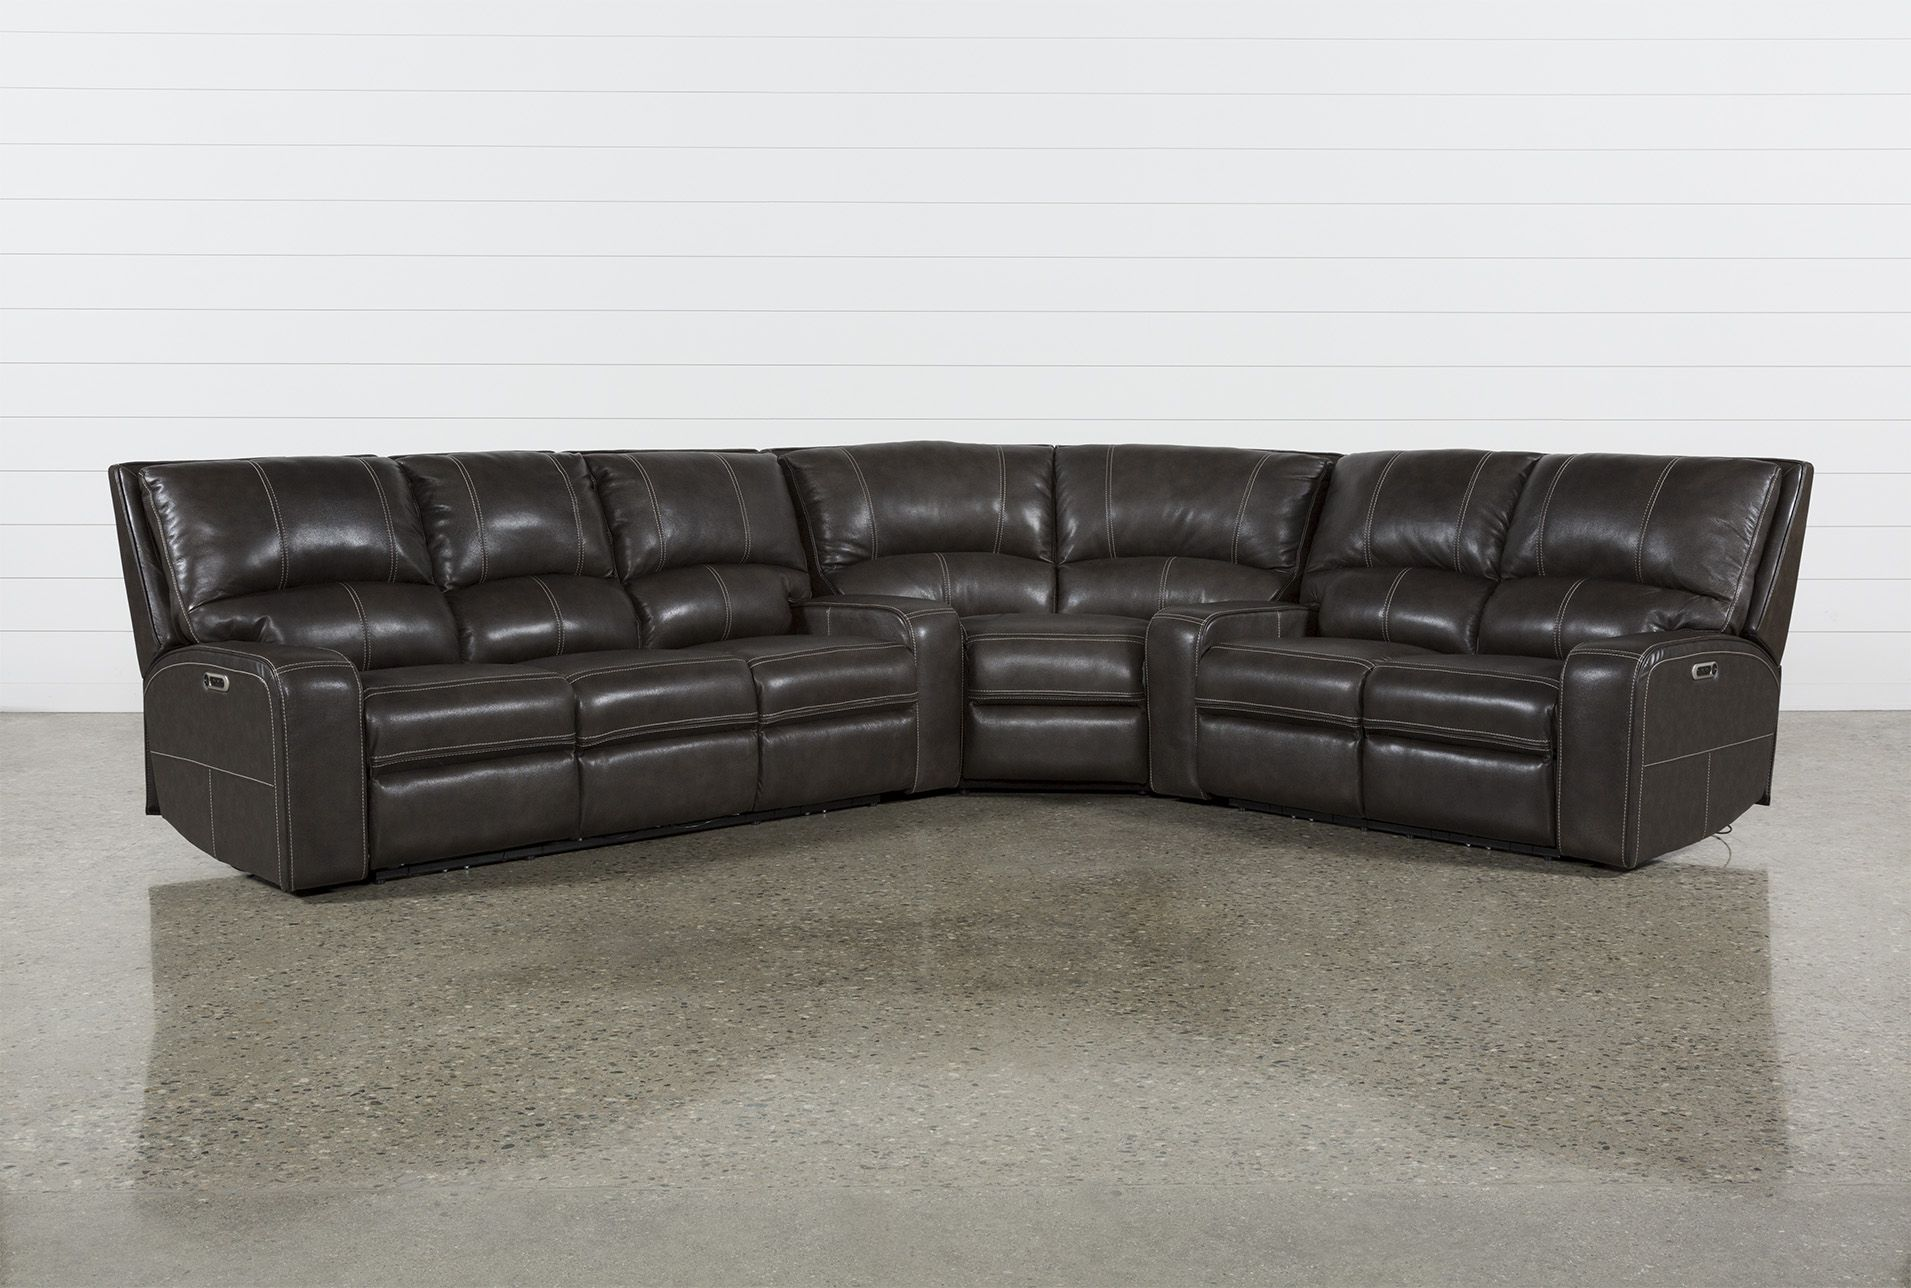 Pin By Deden On Sopa Reclining Sectional Power Recliners Sectional